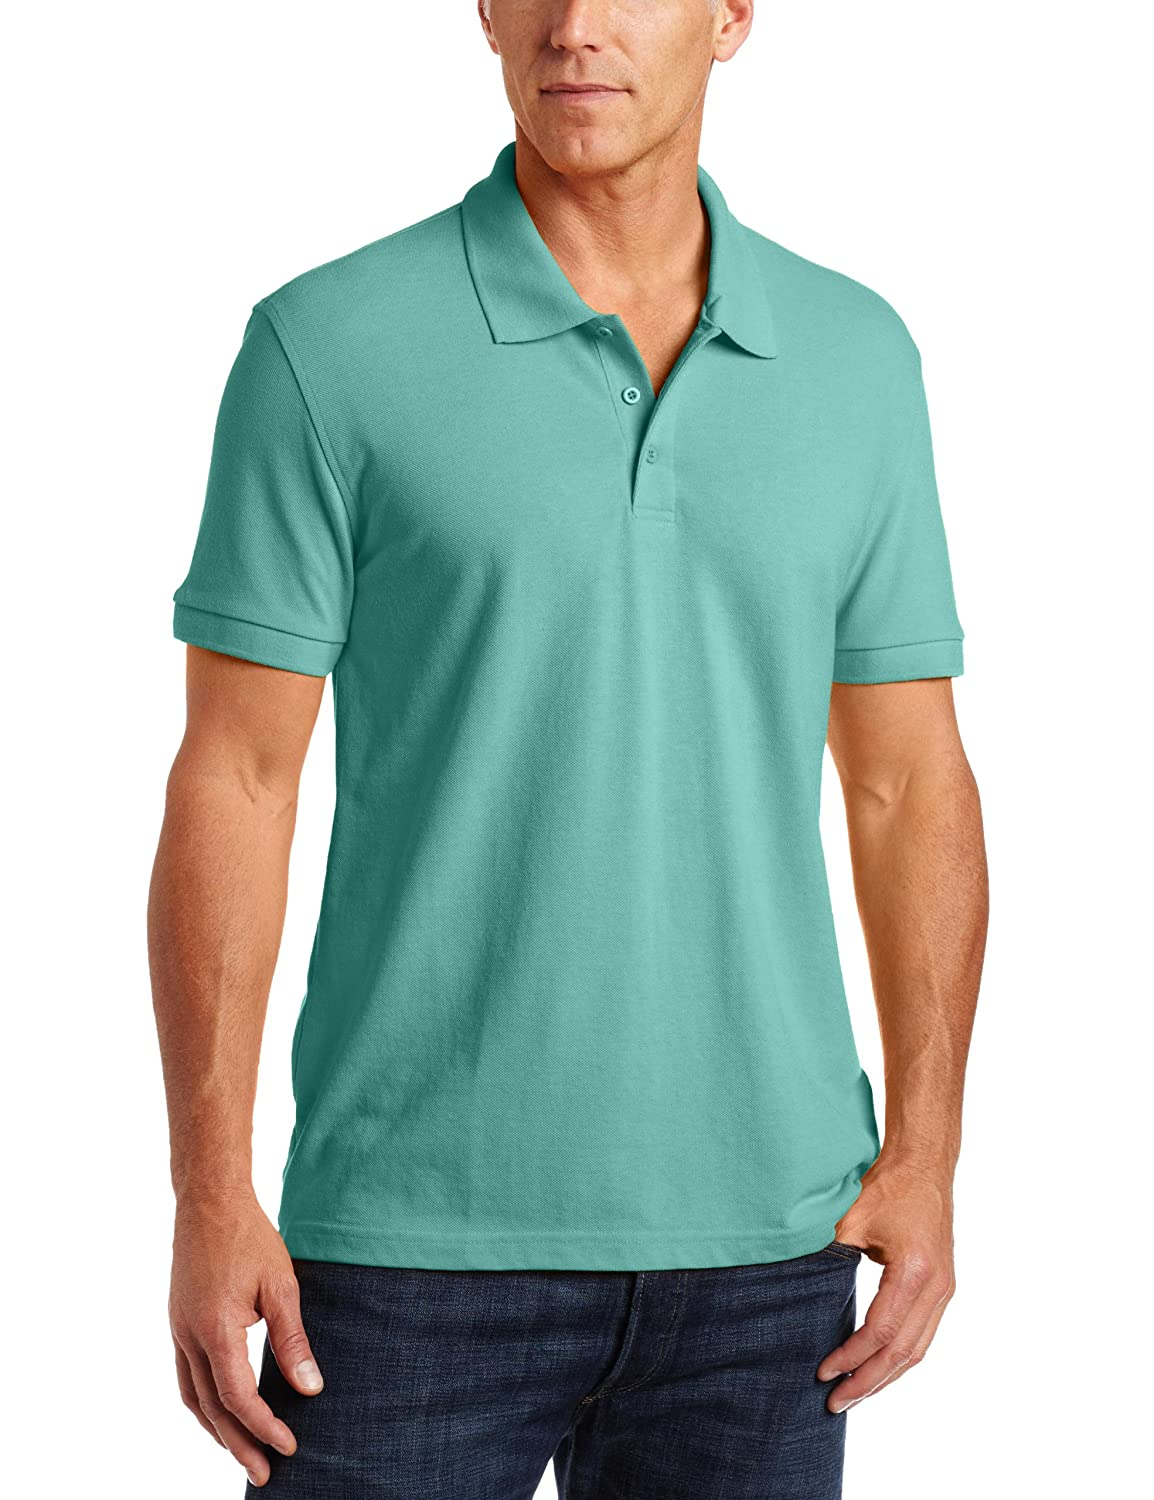 4XL Classroom School Uniforms Mens Big and Tall Adult Unisex Short Sleeve Pique Polo Teal